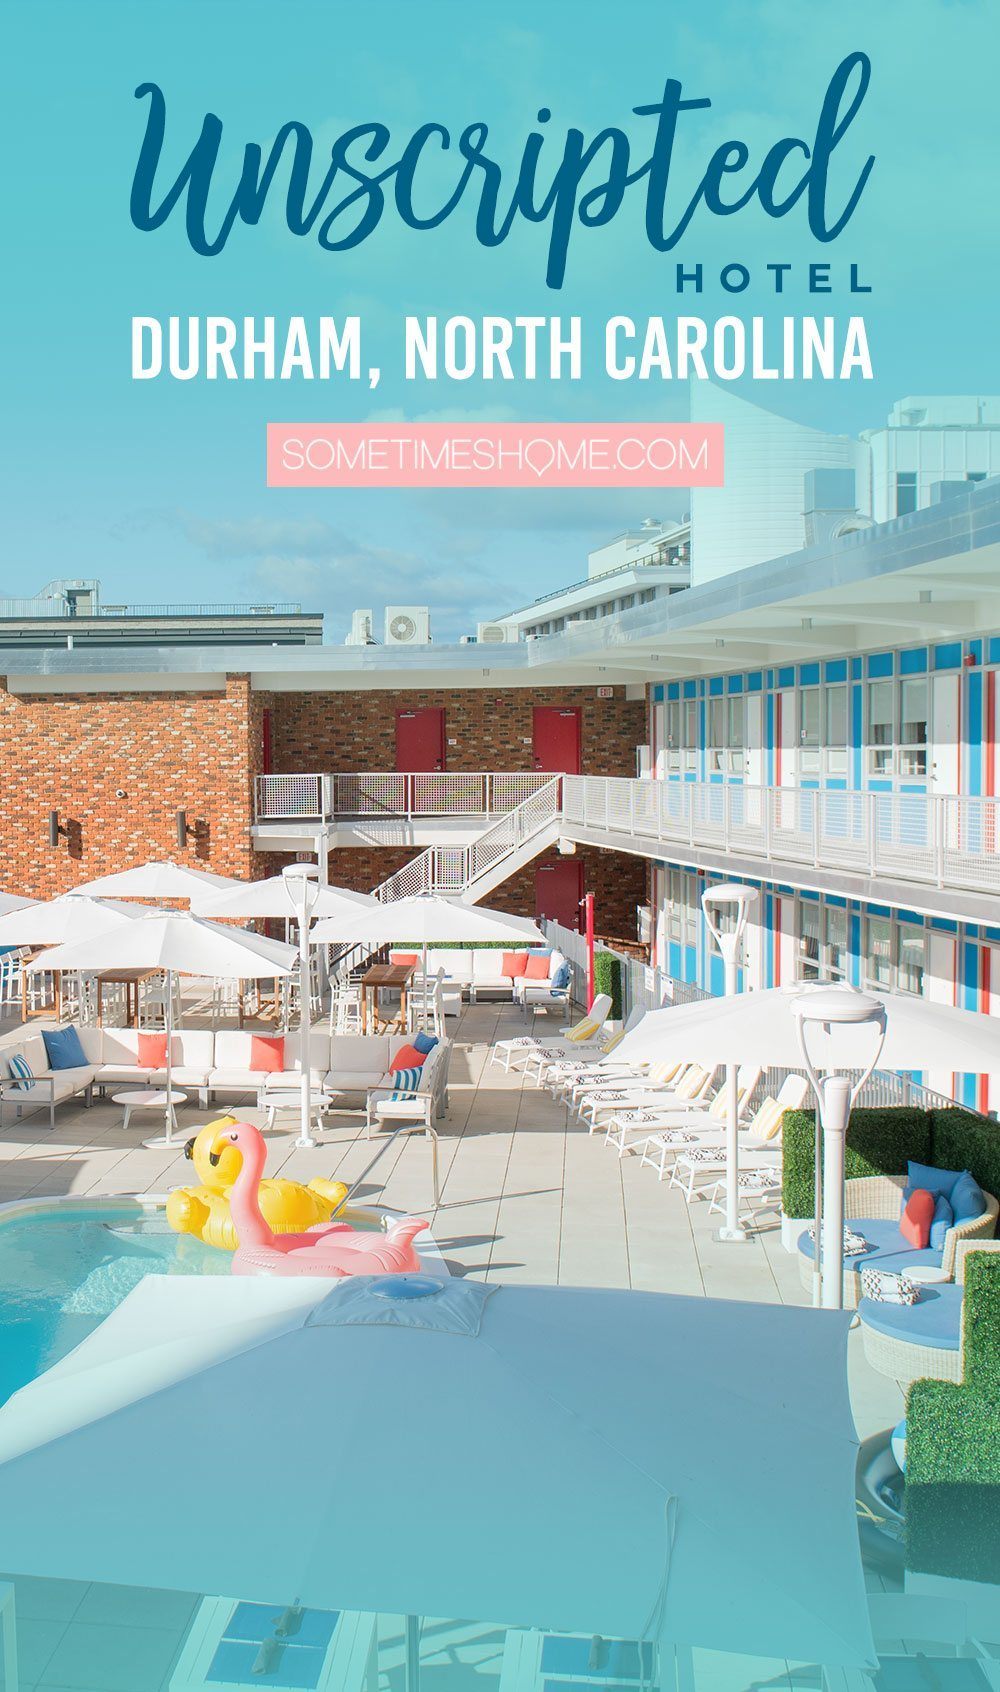 Unscripted Durham Hotel Review on Sometimes Home travel blog. Extensive photos and advice for this mid-century modern designs hotel in North Carolina.